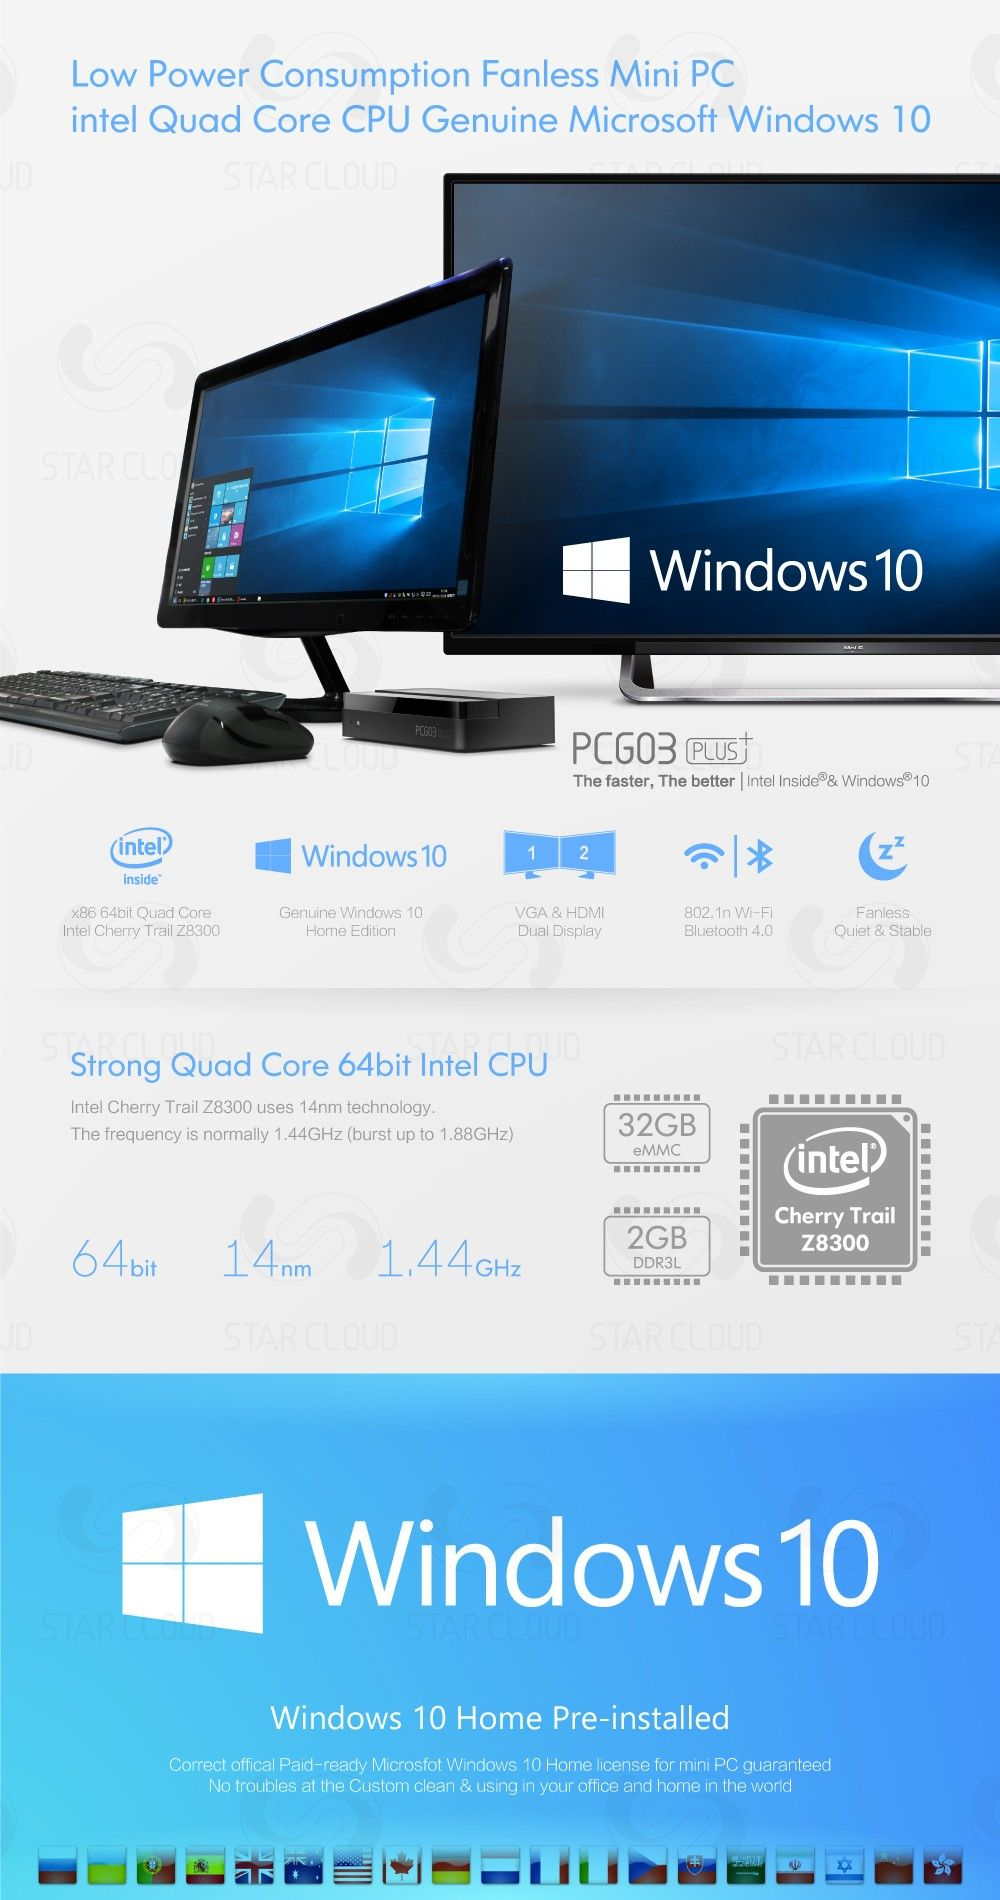 Low Power Consumption Fanless Mini PC intel Quad Core CPU Genuine Microsoft Windows 10 The faster, The better | Intel lnside®& Windows®10 Windows 10  Inside x86 64bit Quad Core	Genuine Windows 10	VGA&HDMI	802.1n Wi-Fi	Fanless Intel Cherry Trail Z8300	Home Edition	Dual Display	Bluetooth 4.0	Quiet & Stable Strong Quad Core 64bit Intel CPU Intel Cherry Trail Z8300 uses 14nm technology. The frequency is normally 1.44GHz (burst up to 1,88GHz) 32GB eMMC	2GB DDR3L 64bit 14nm 1.44GHZ